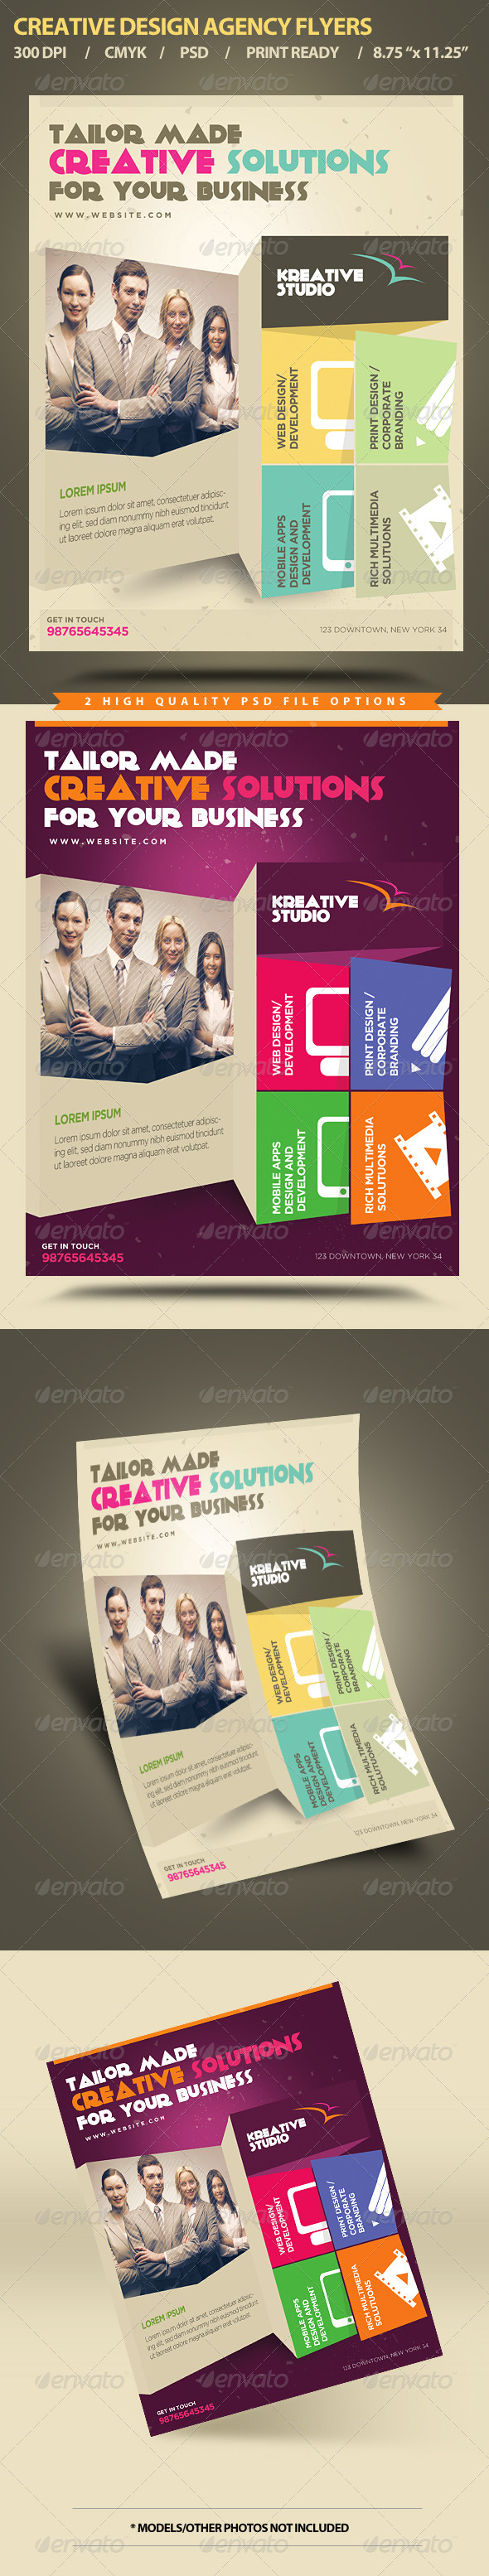 Creative Design Agency Flyers - Commerce Flyers